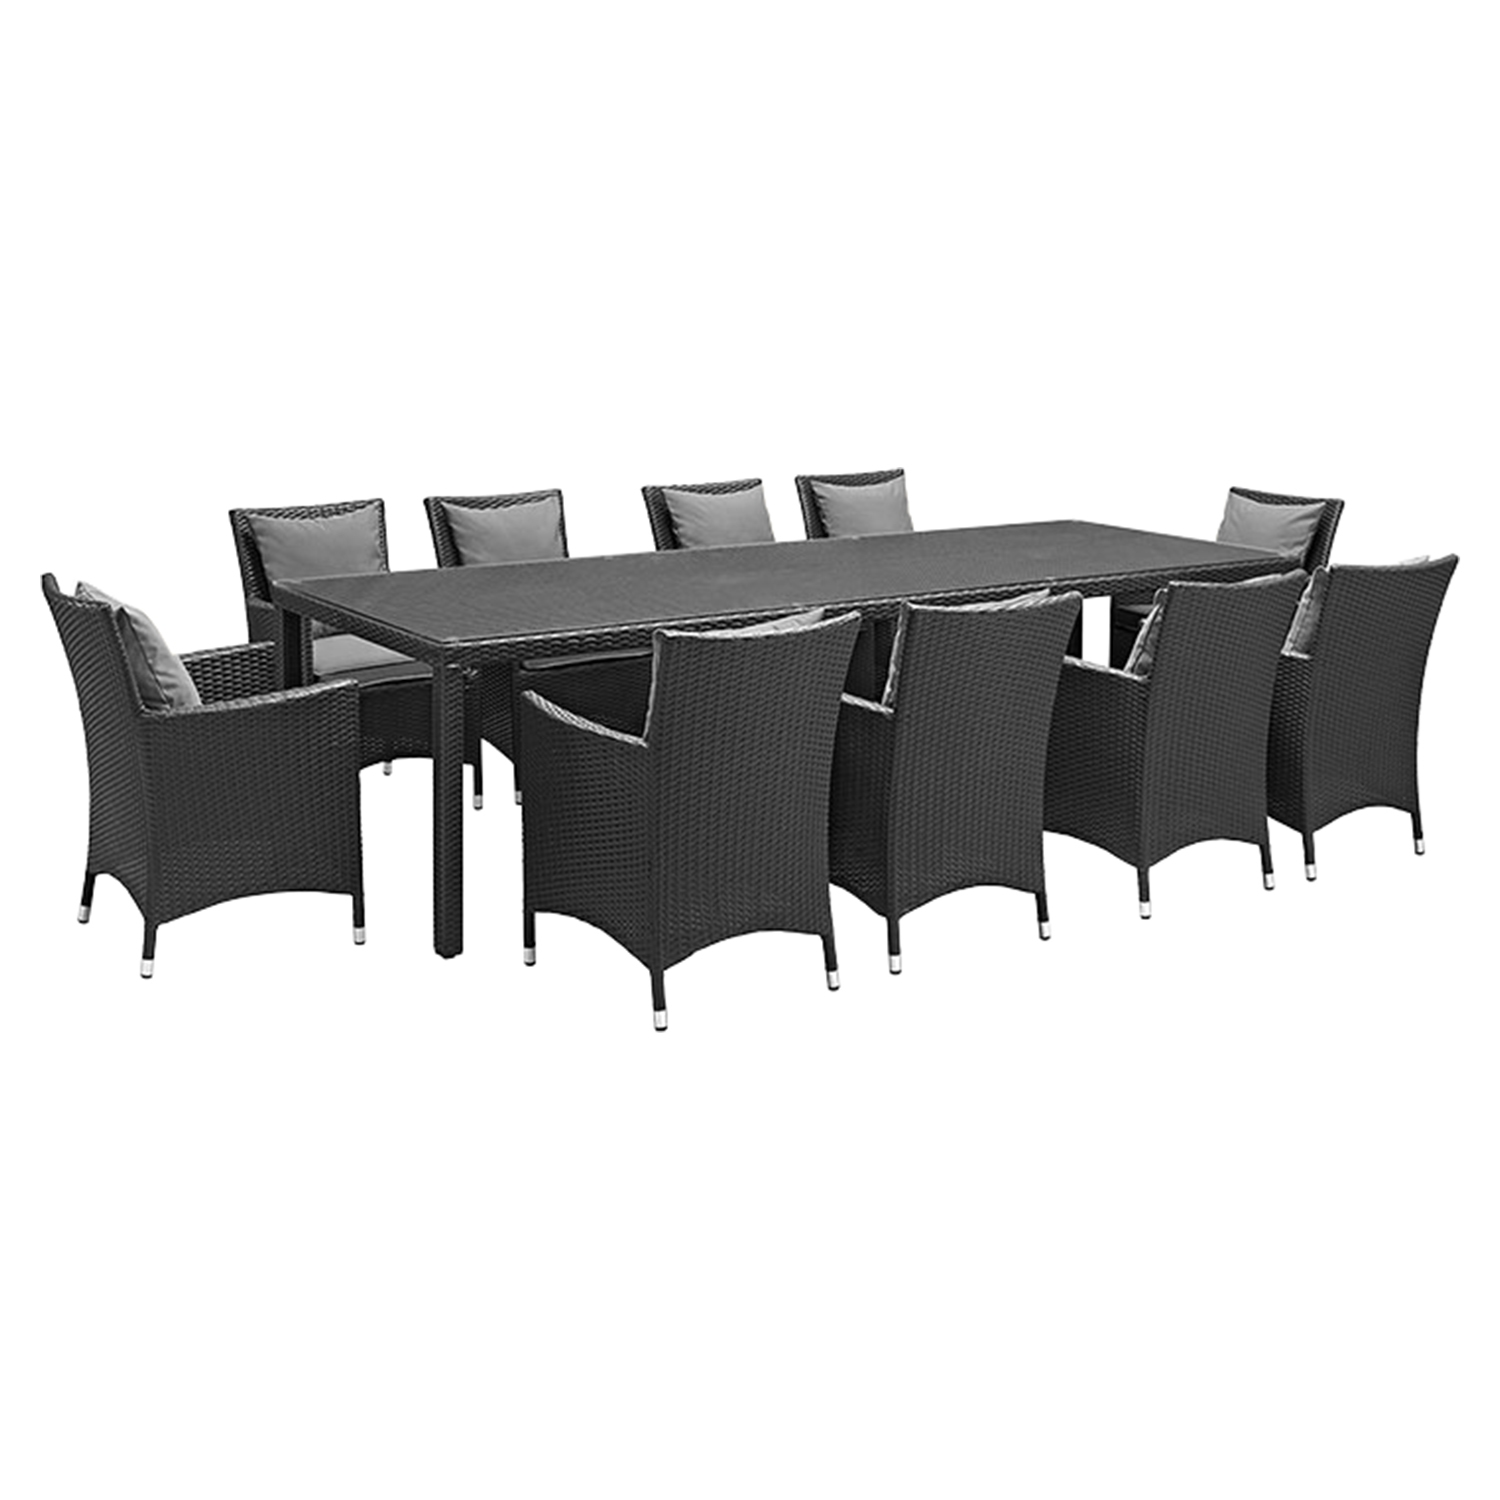 Convene 11 Pieces Patio Dining Set - EEI-2219-EXP-SET